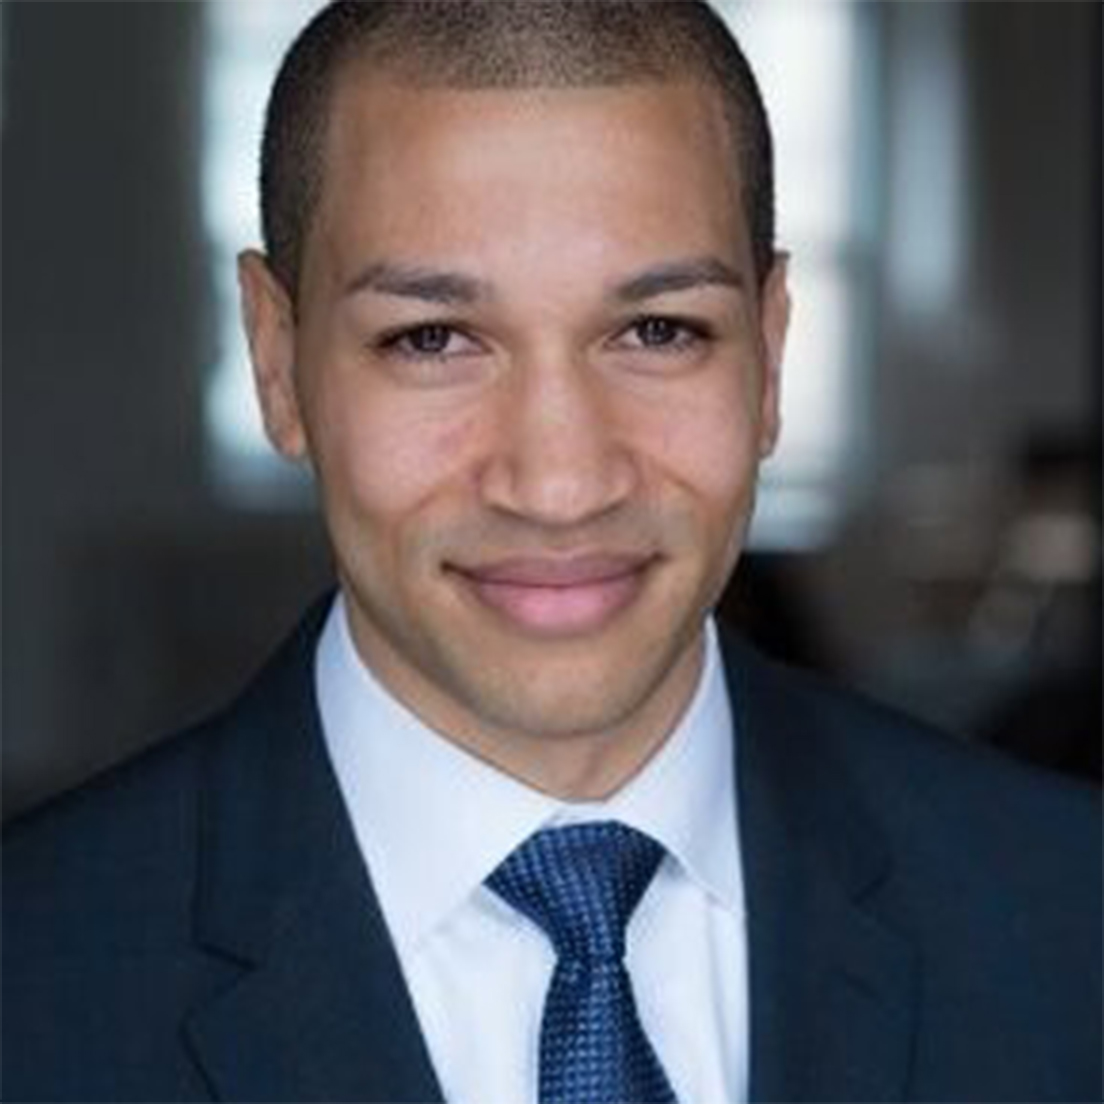 Photograph of Aaron Clubb, Advisor to AboveBoard